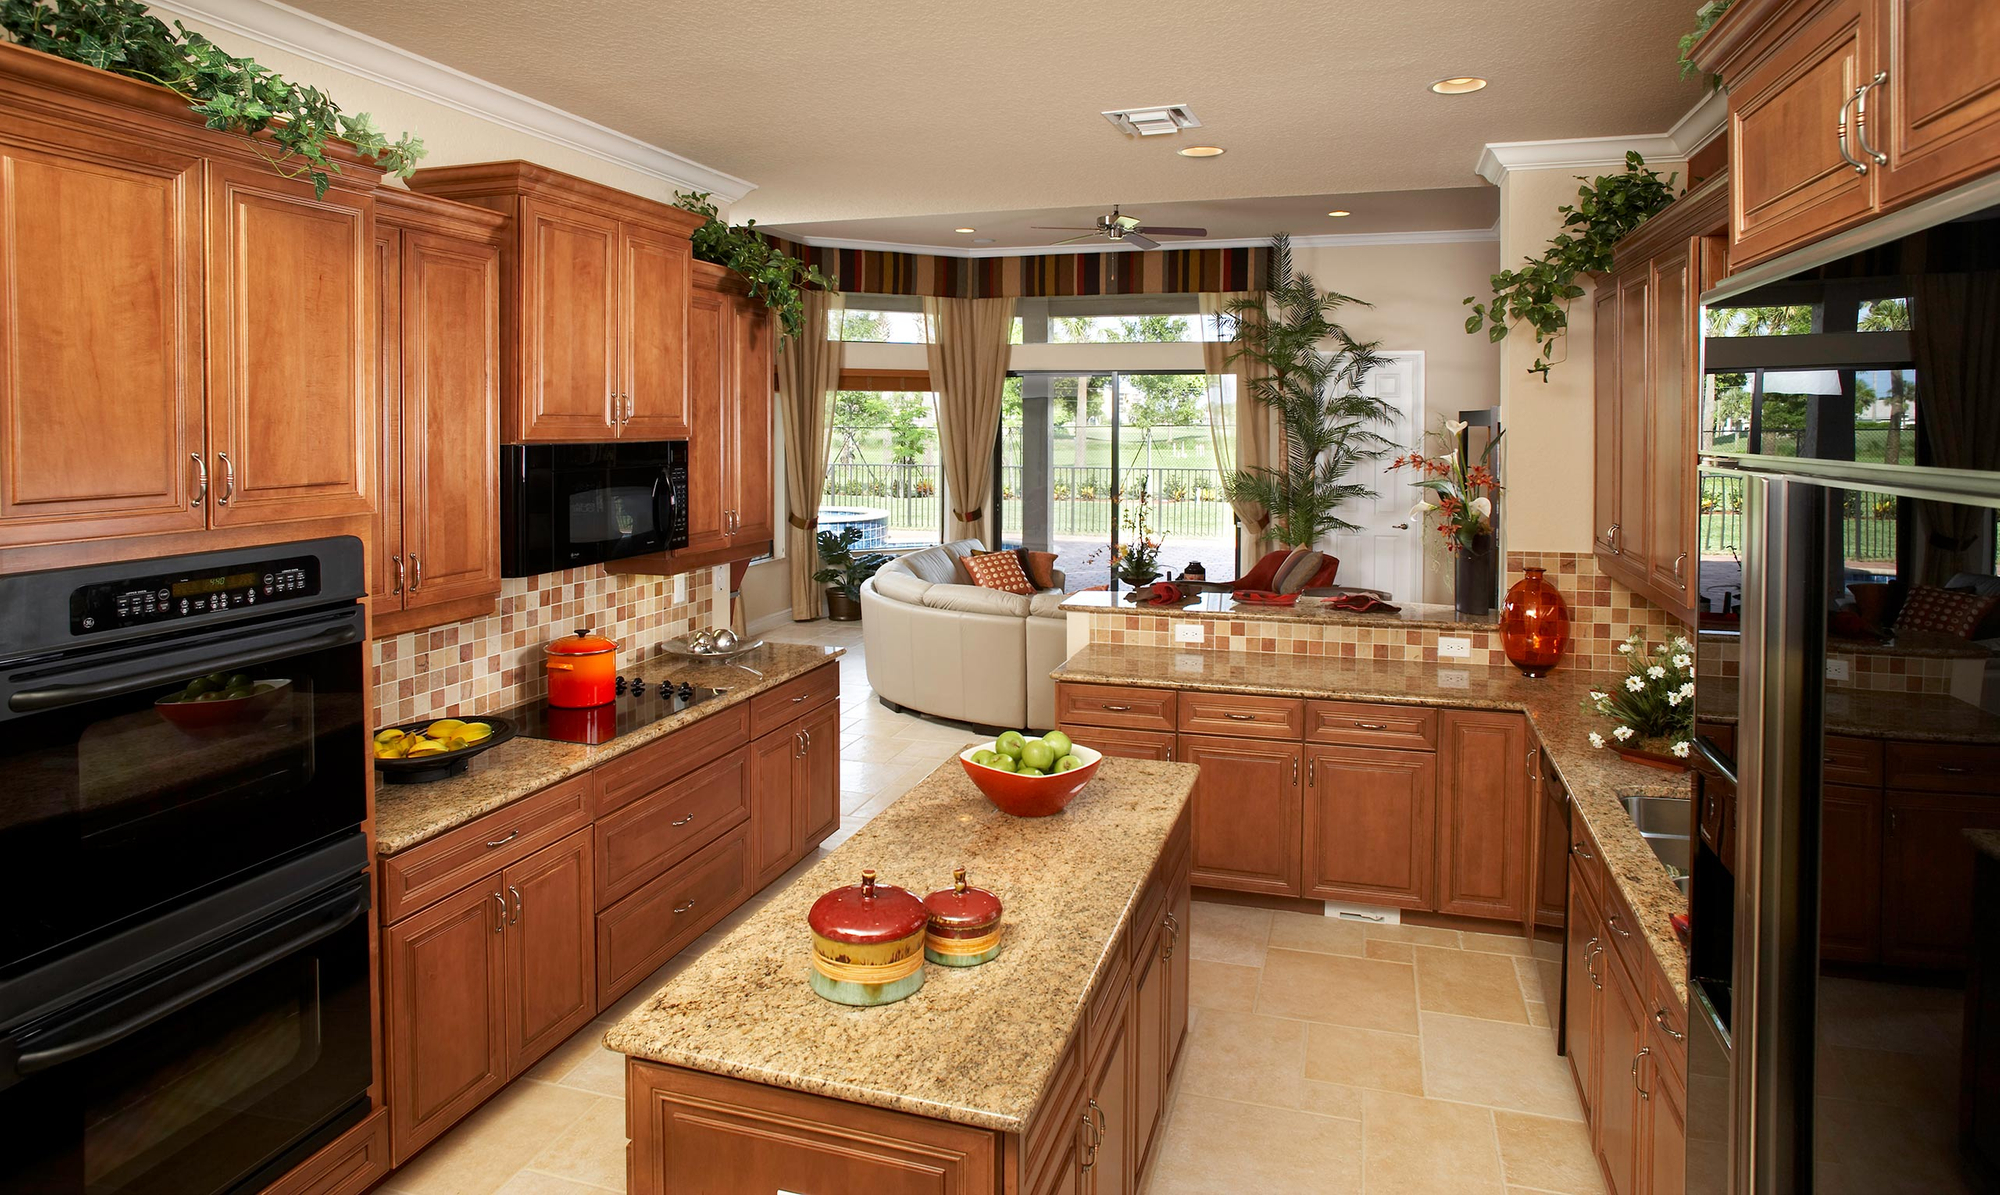 Kitchen11548-copy.jpg